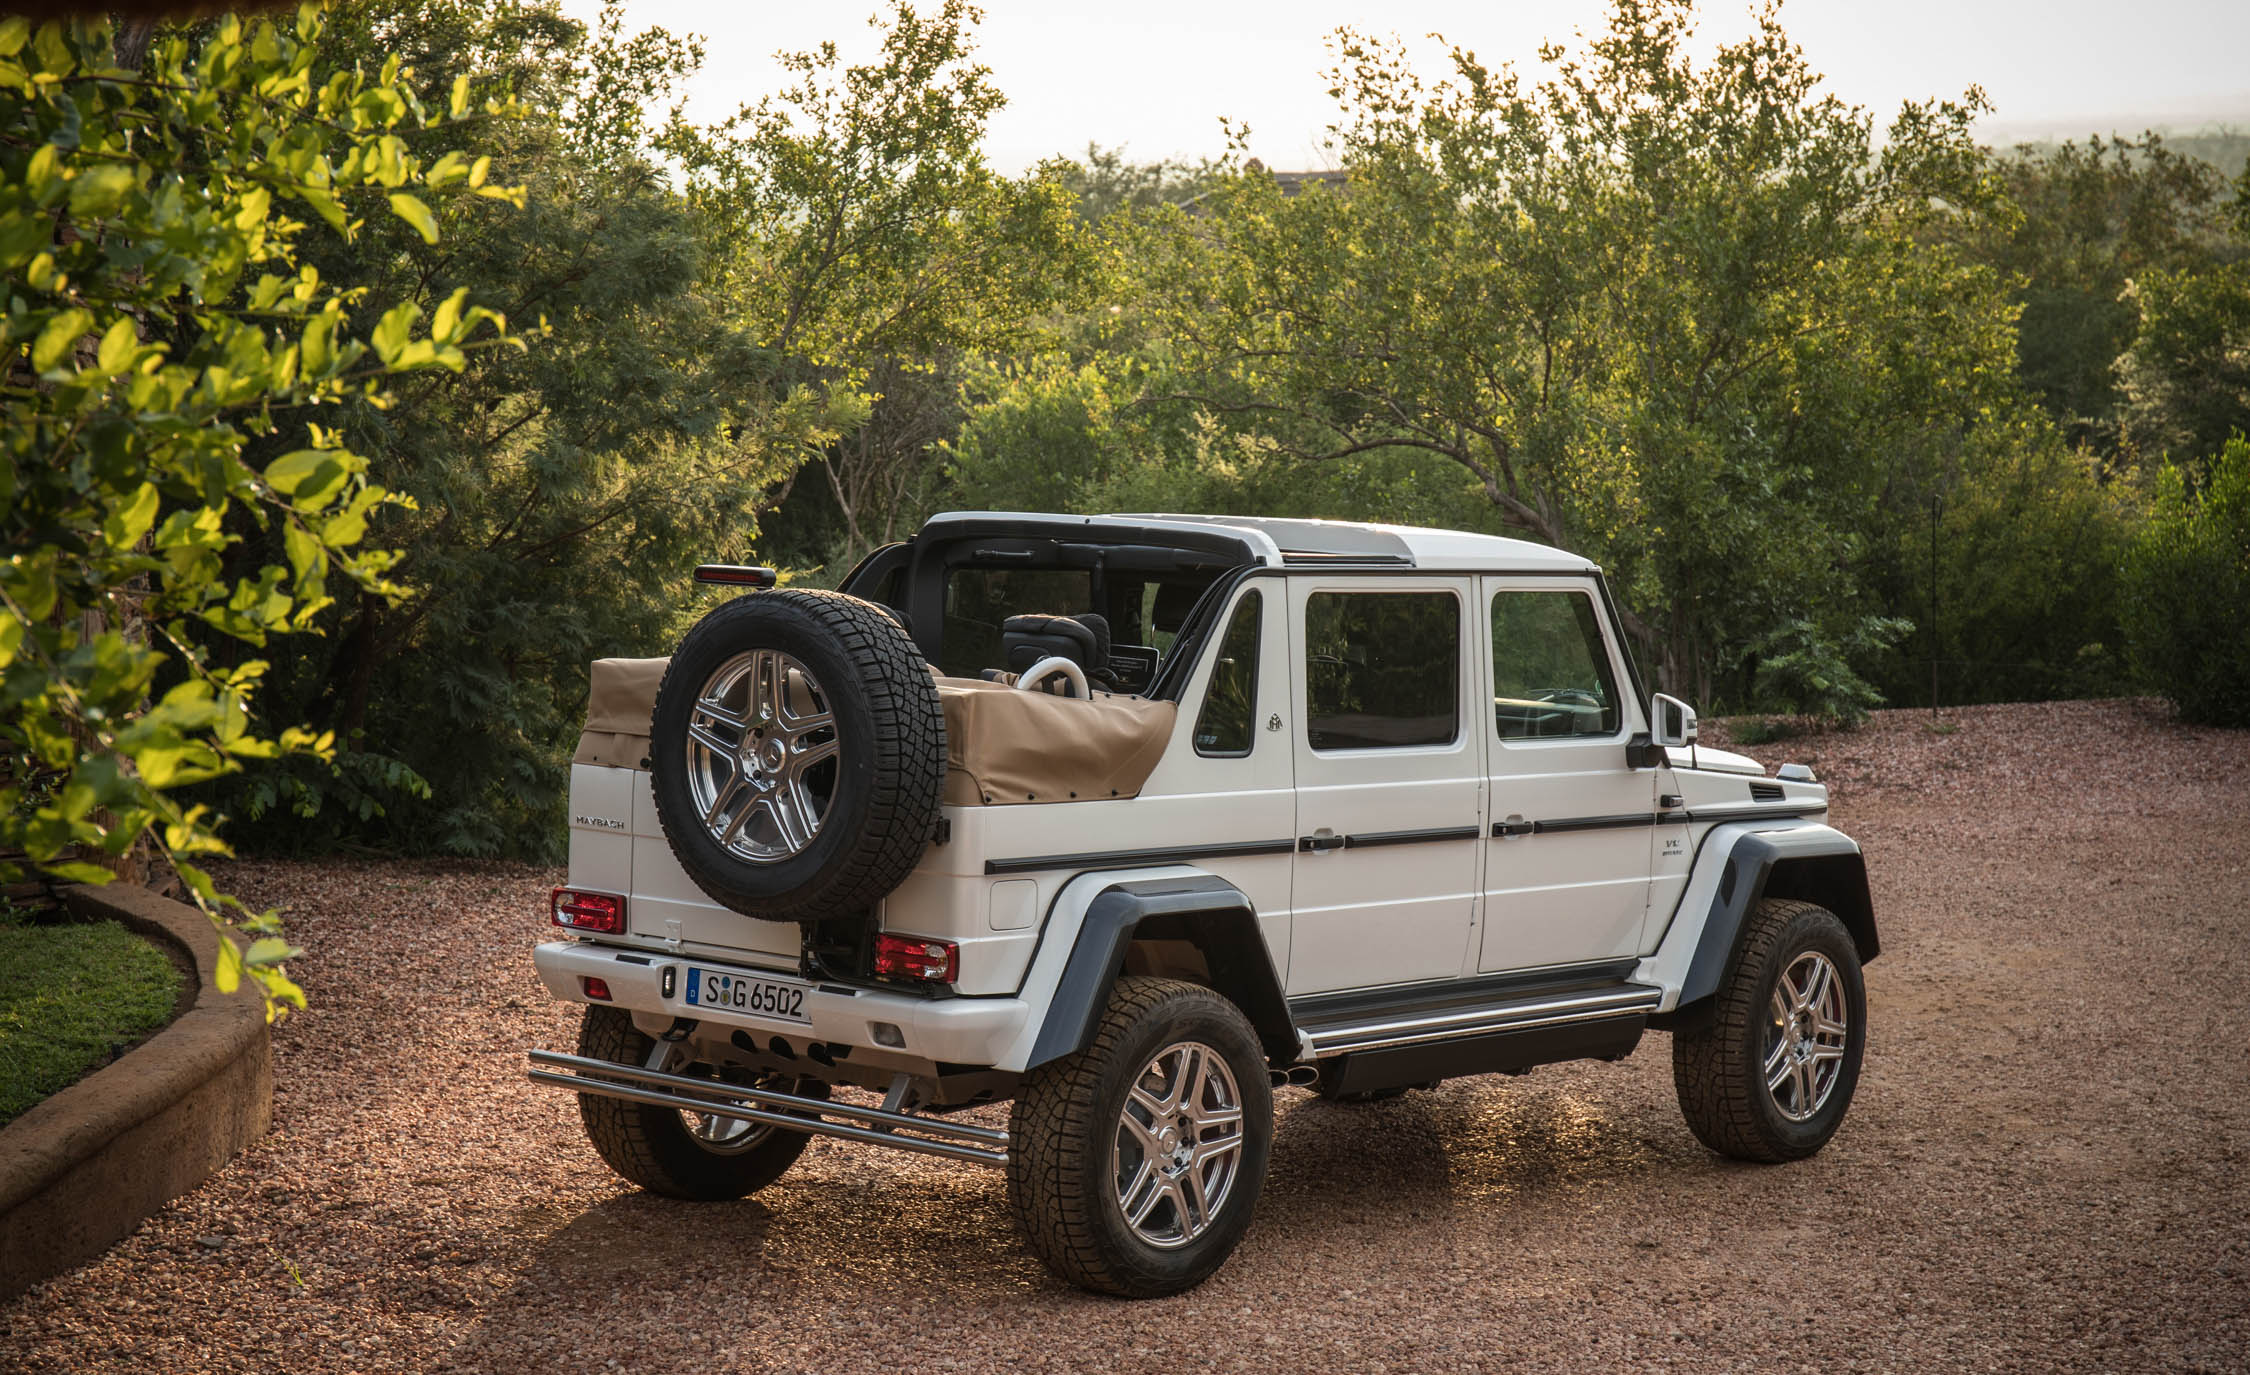 2018 Mercedes Maybach G650 Landaulet White Exterior Rear And Side Roof Open (View 6 of 52)